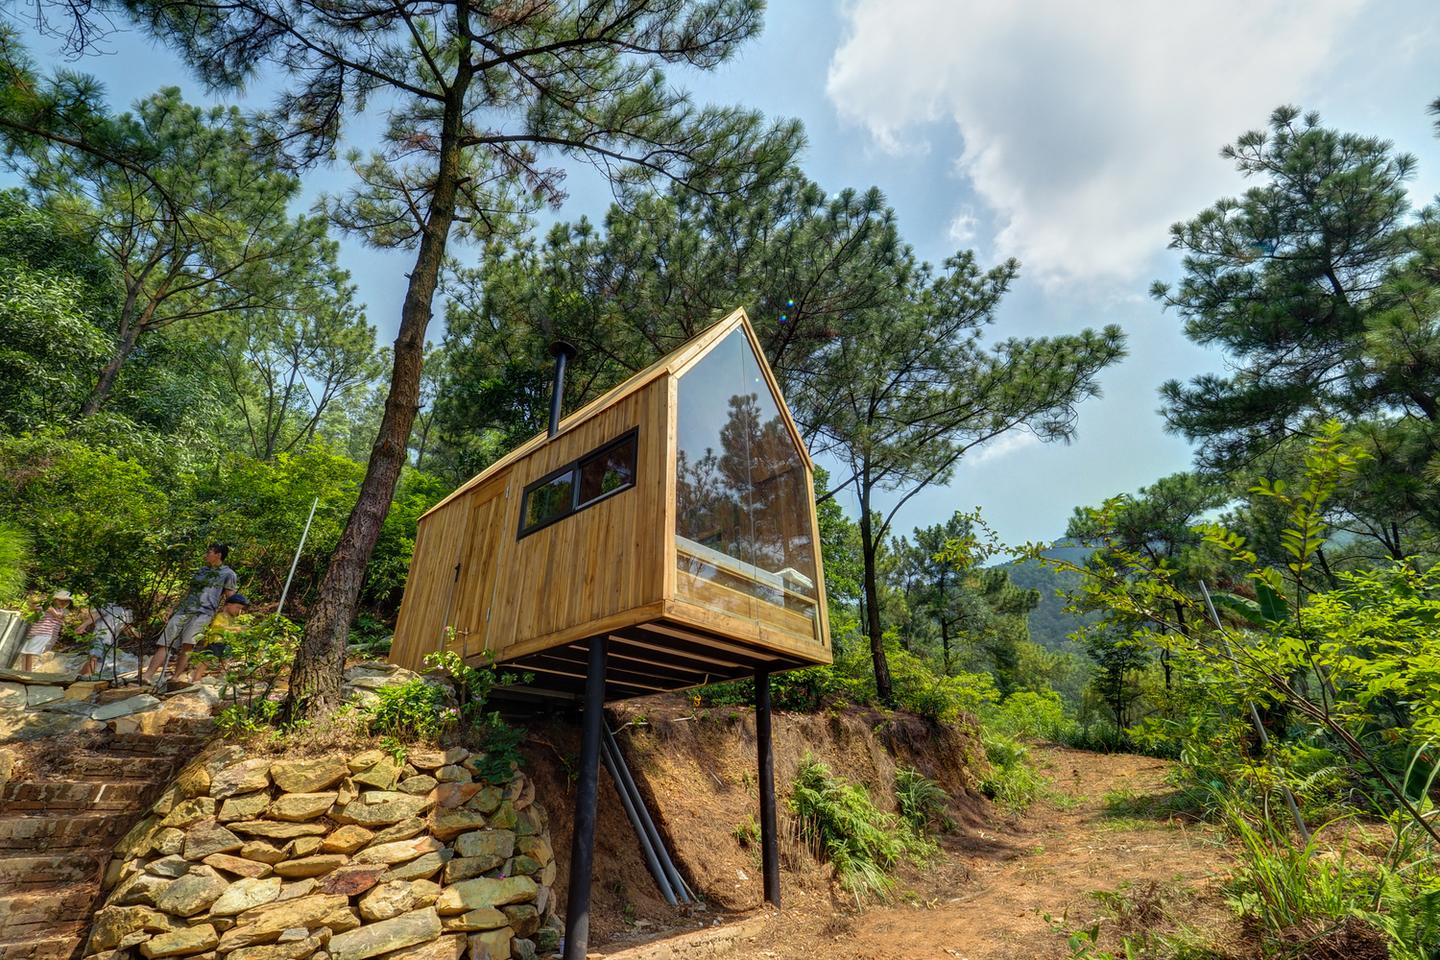 Vietnamese architect Chu Van Dong has completed a tiny house project that offers a cheap and easy solution for temporary housing or tiny house living